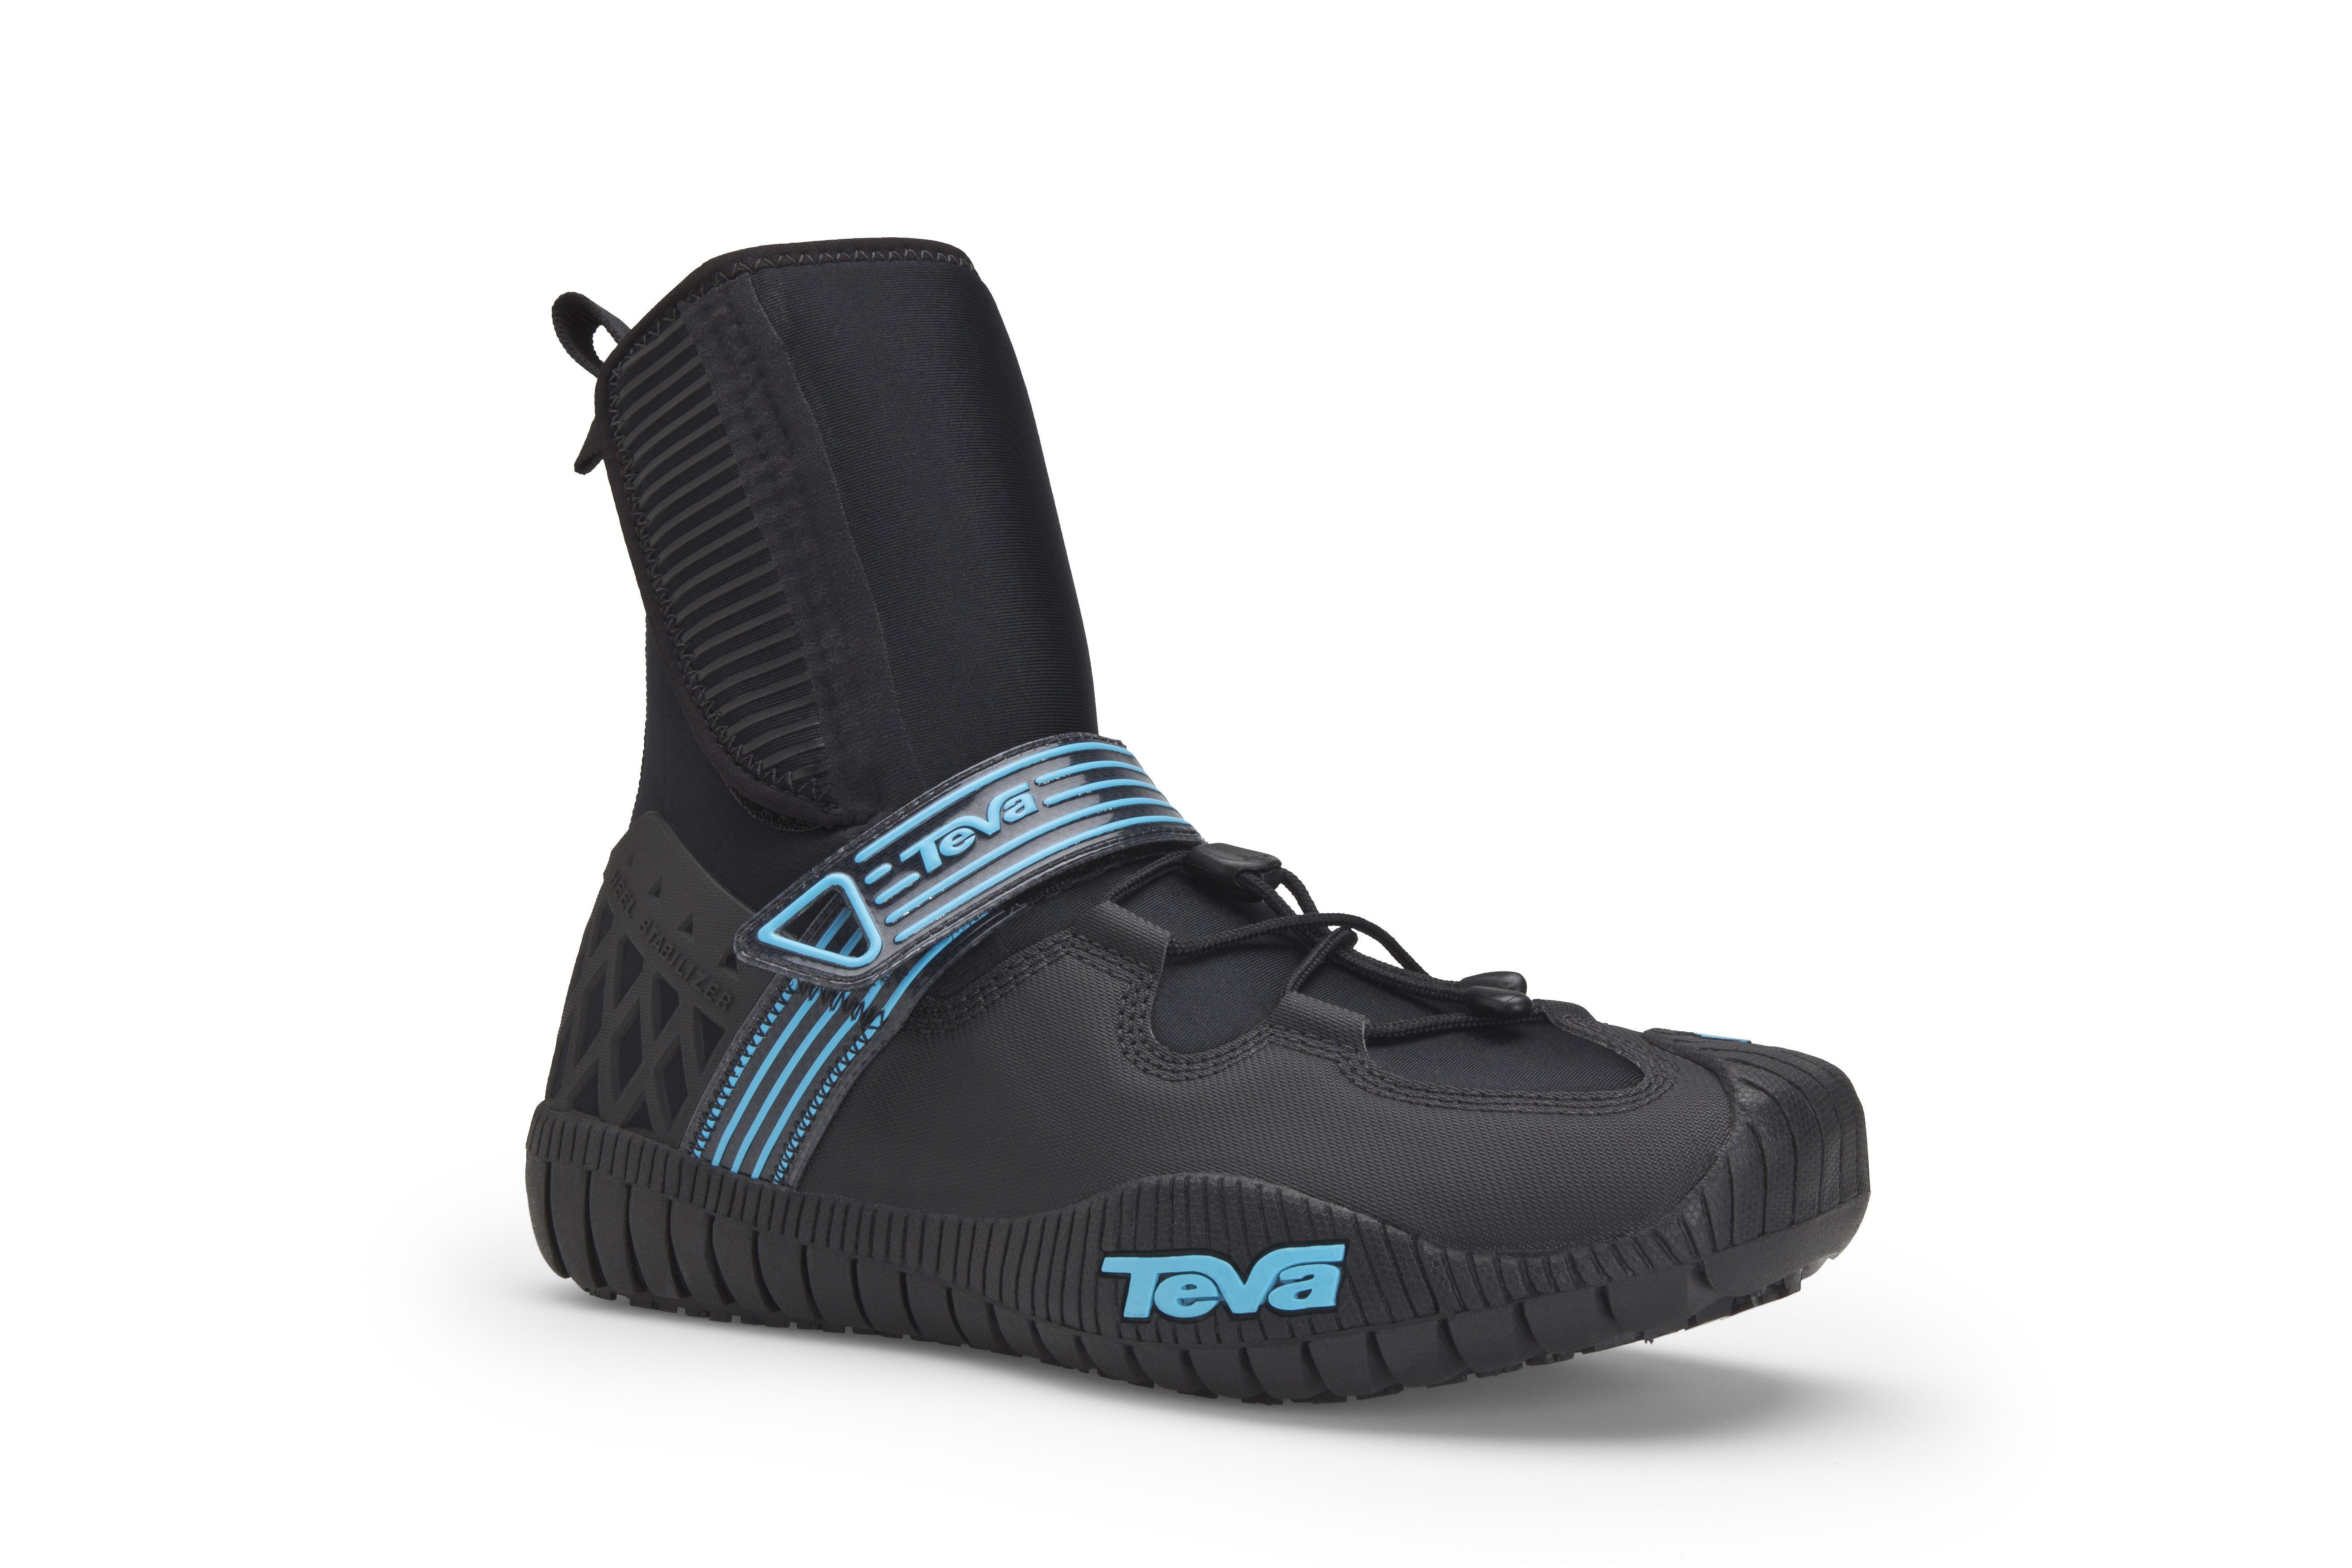 The Cherry Bomb 2 kayak bootie is from Teva's Blue Line Collection and will debut in Spring 2012.